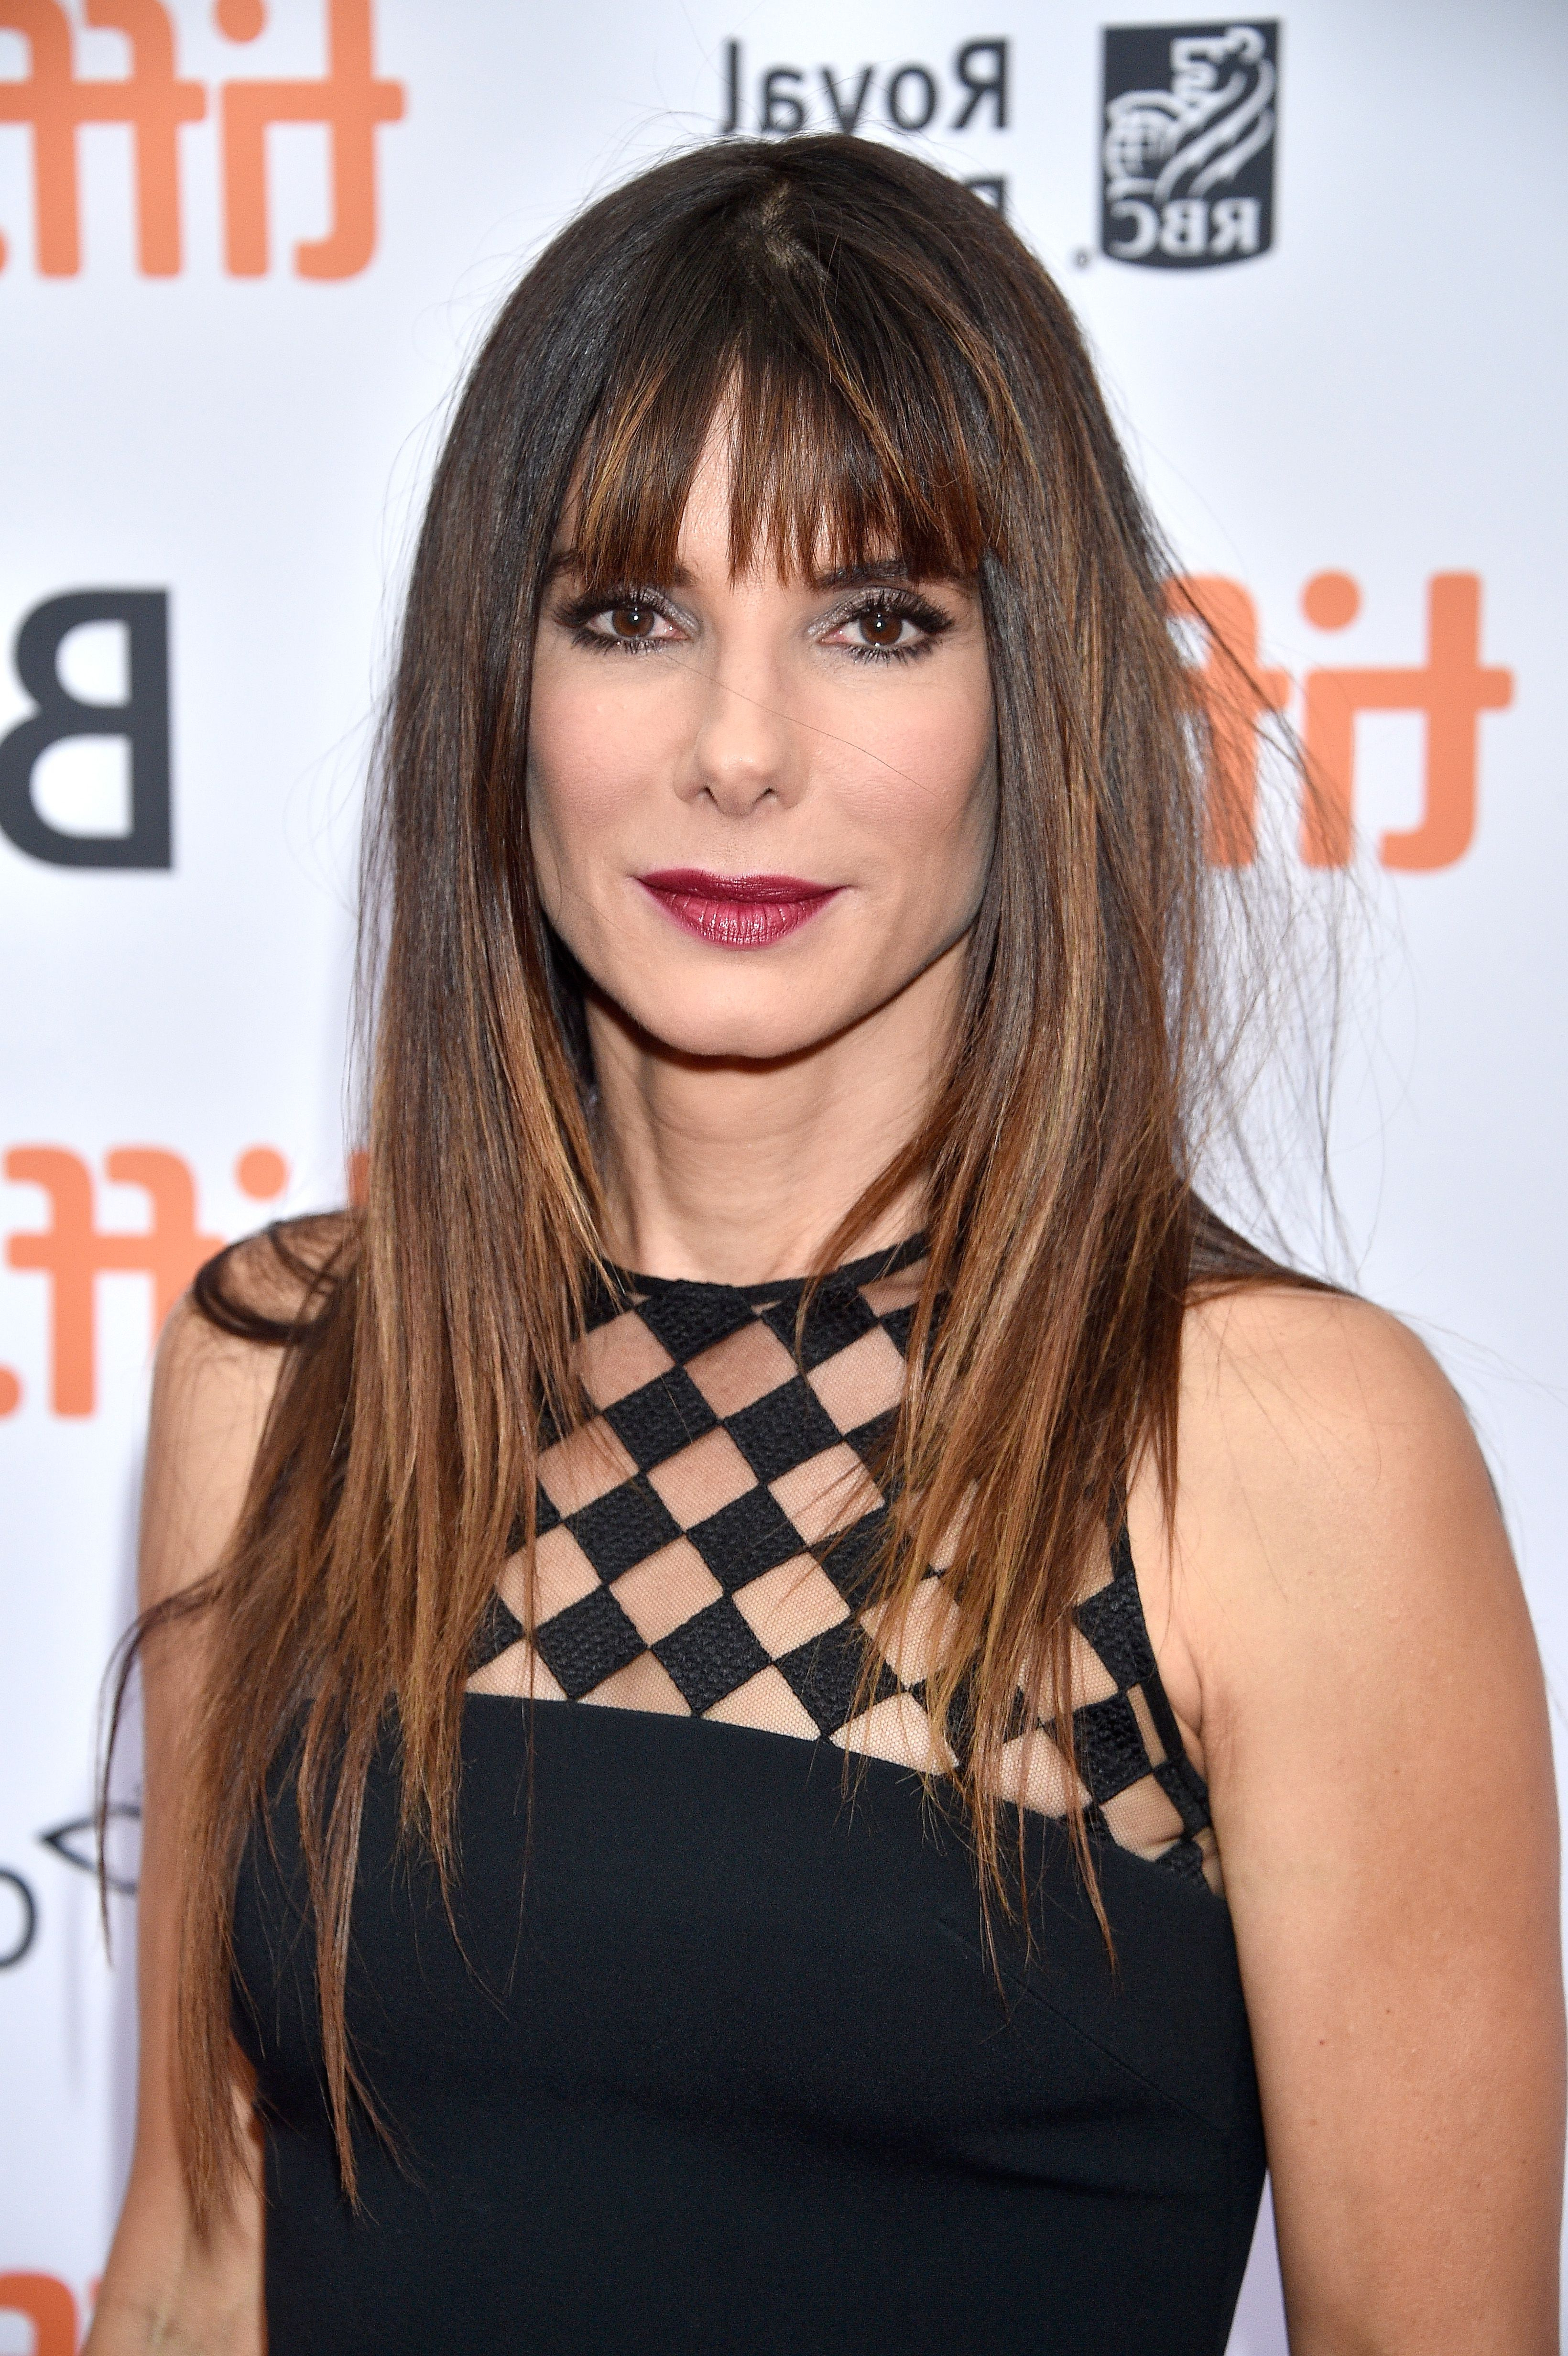 40 Best Layered Haircuts, Hairstyles & Trends For 2018 Intended For Most Current Blowout Ready Layers For Long Hairstyles (View 4 of 20)